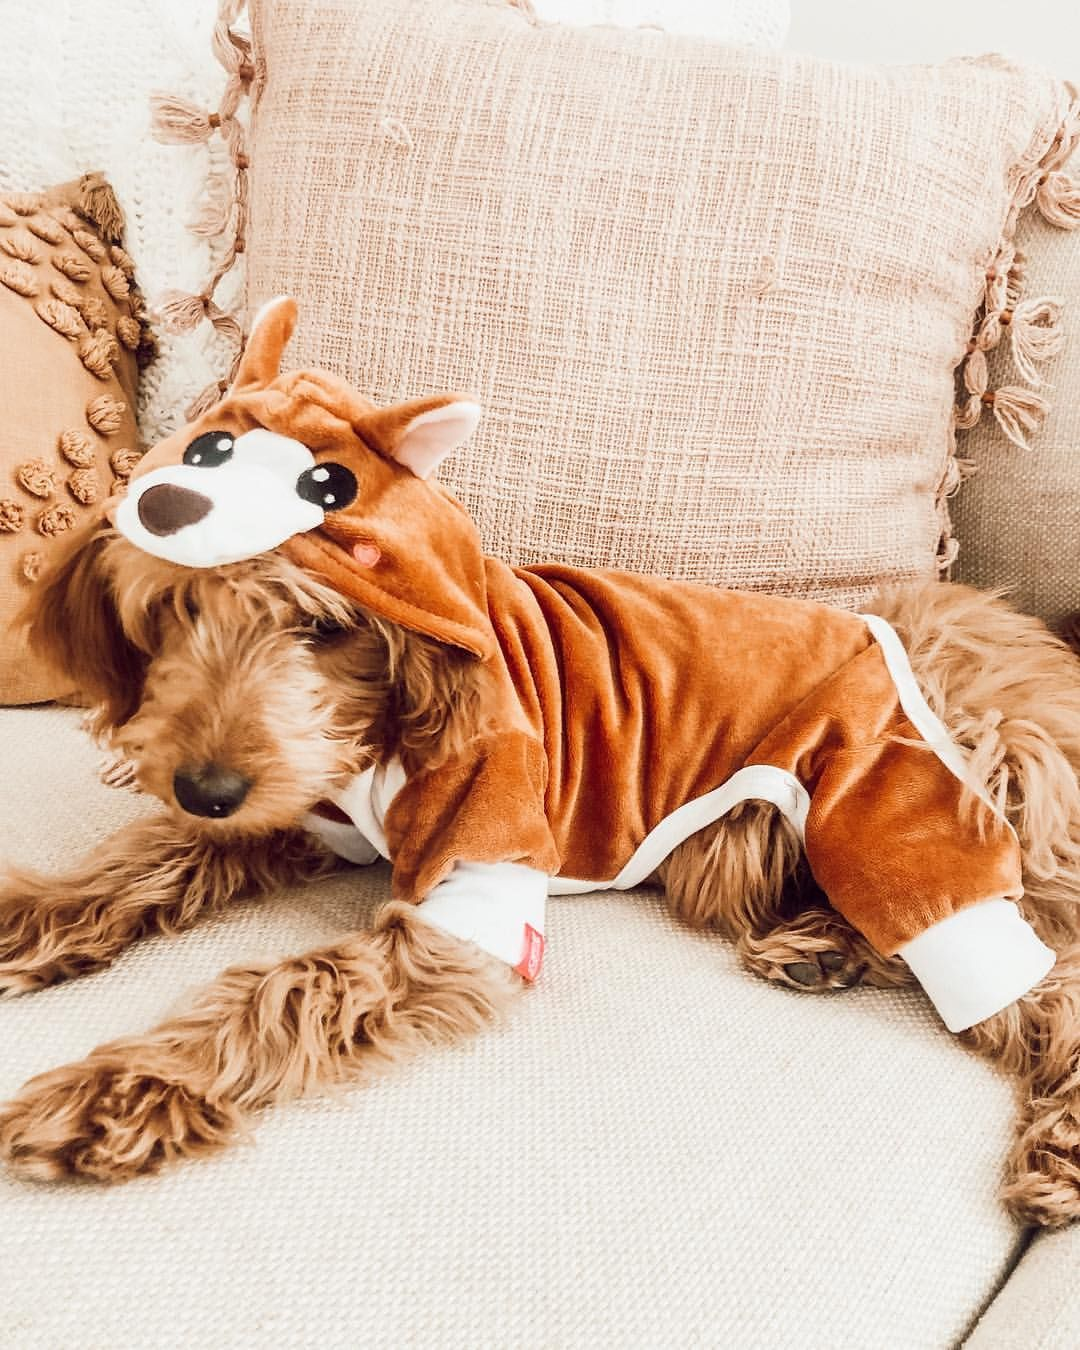 Wearing My New Outfit Thanks Laurdiy Cute Animals Cute Dogs Puppy Kisses